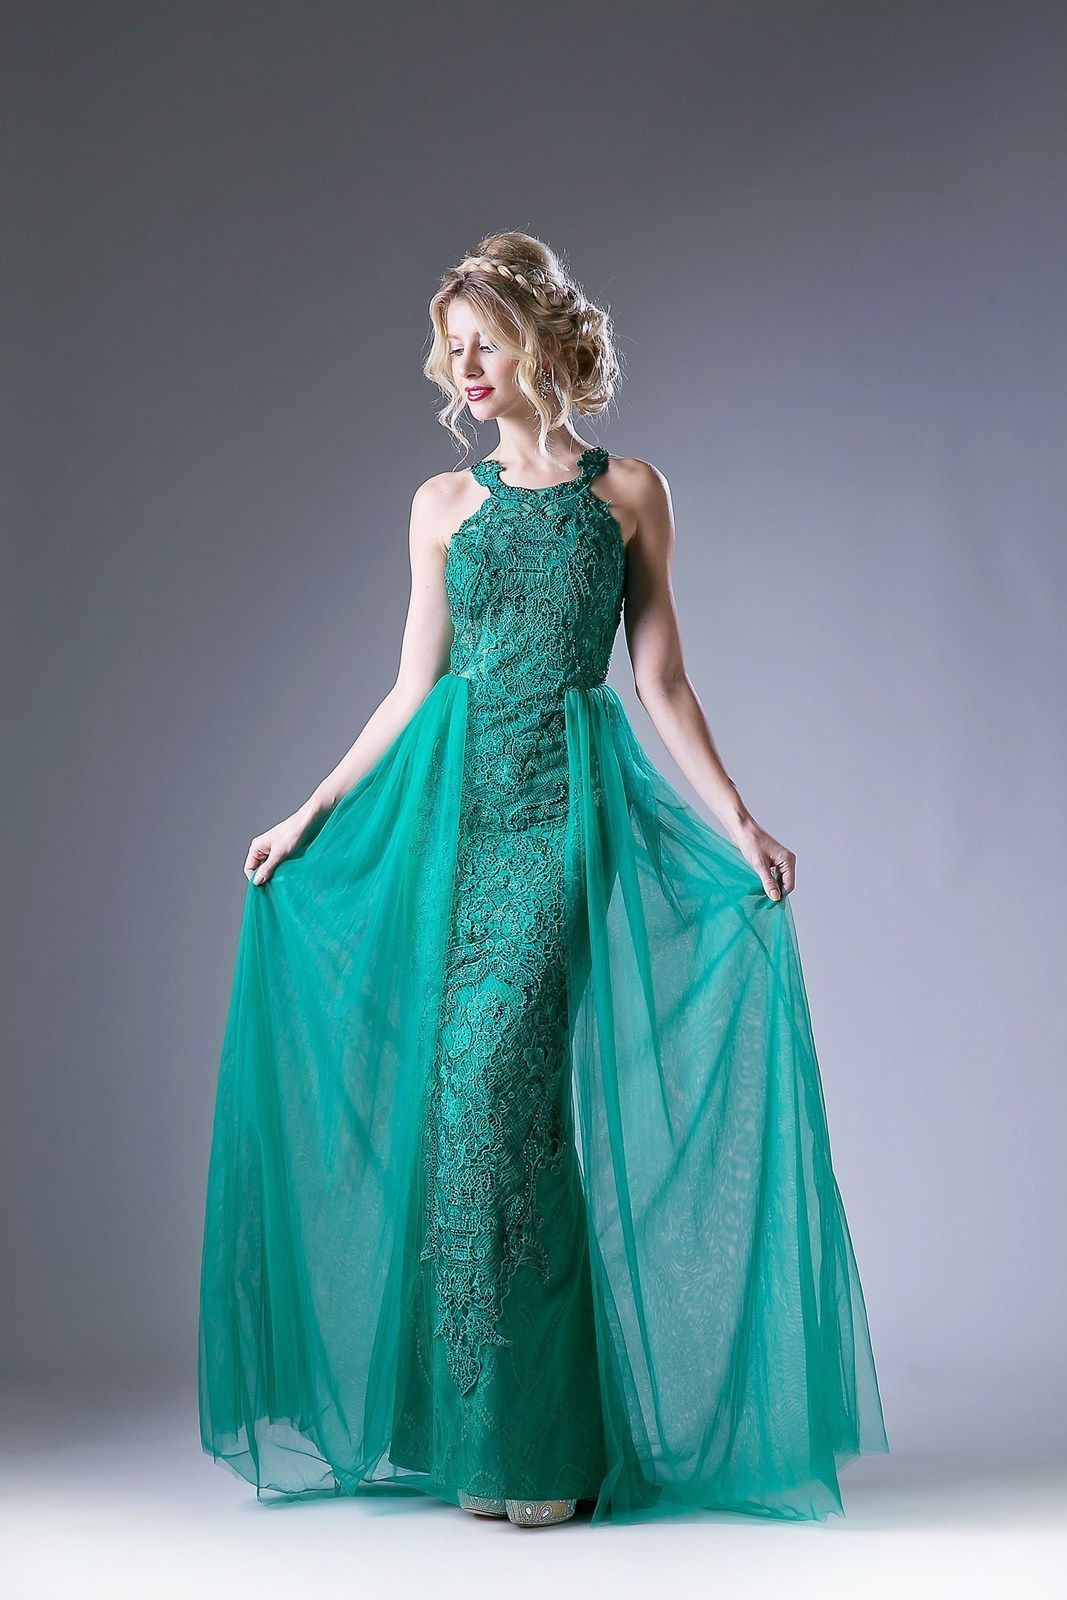 Cool cinderella divine style gl dress collection